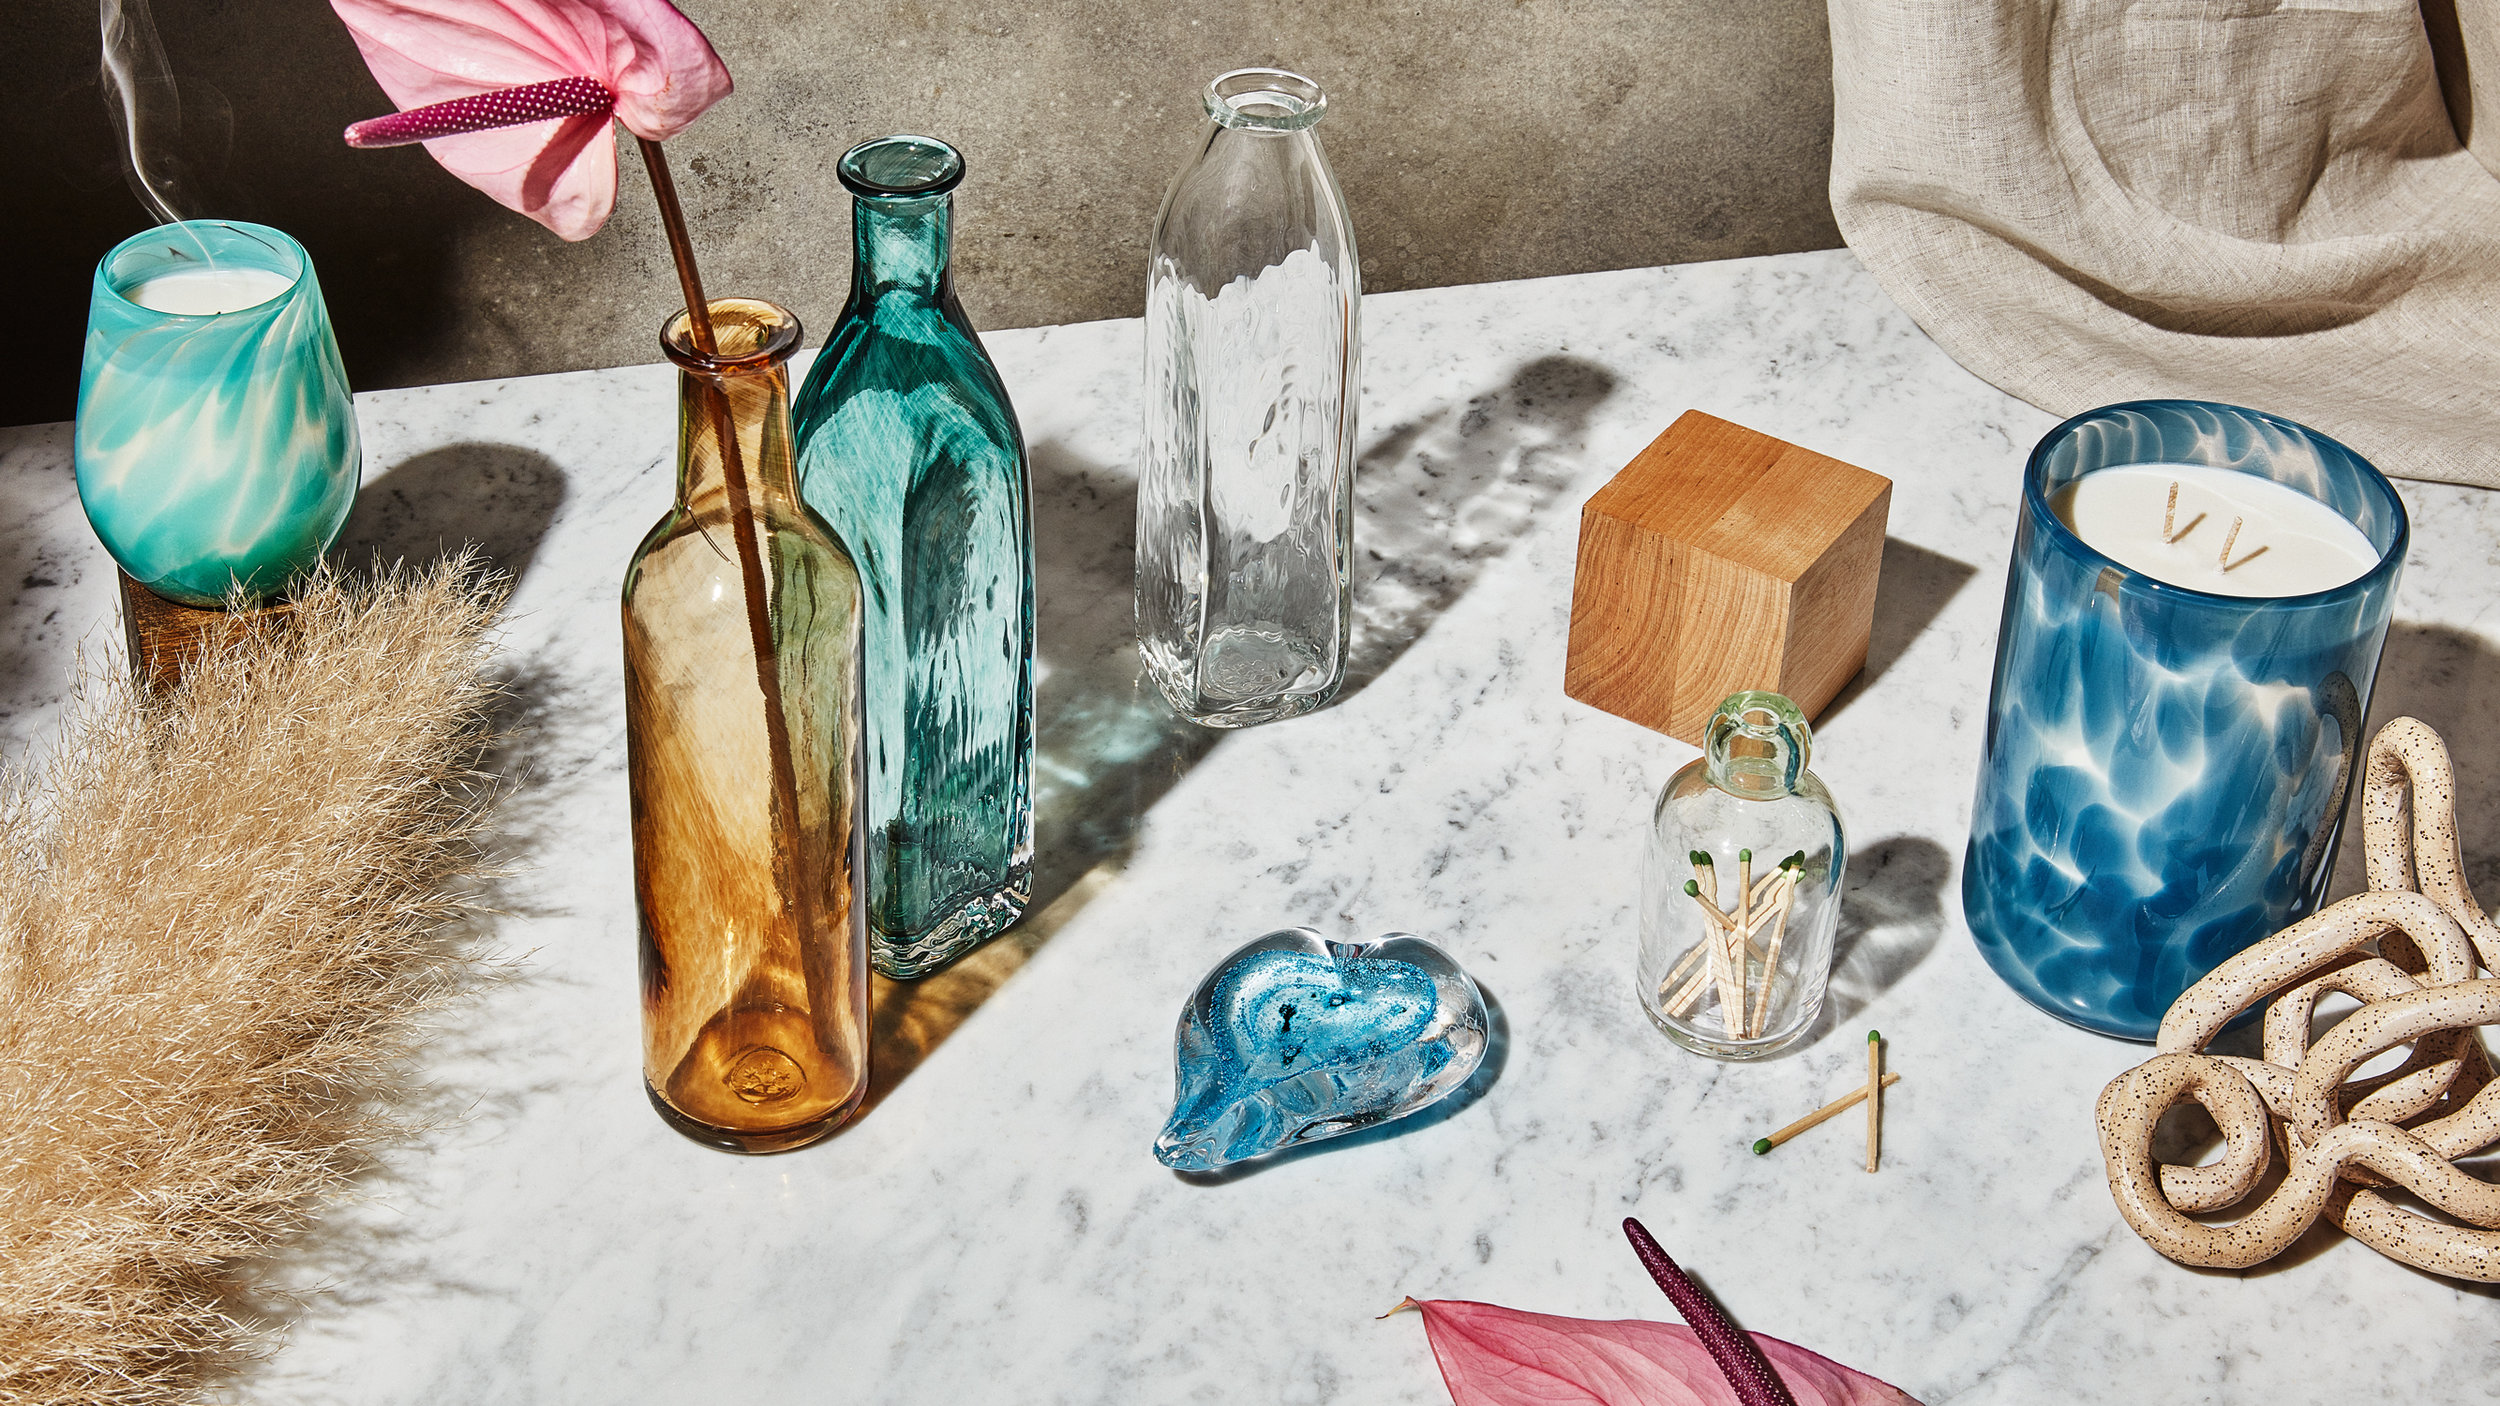 for  cheryl saban glass  / photo by  stephanie gonot  / styling & props by  samantha margherita